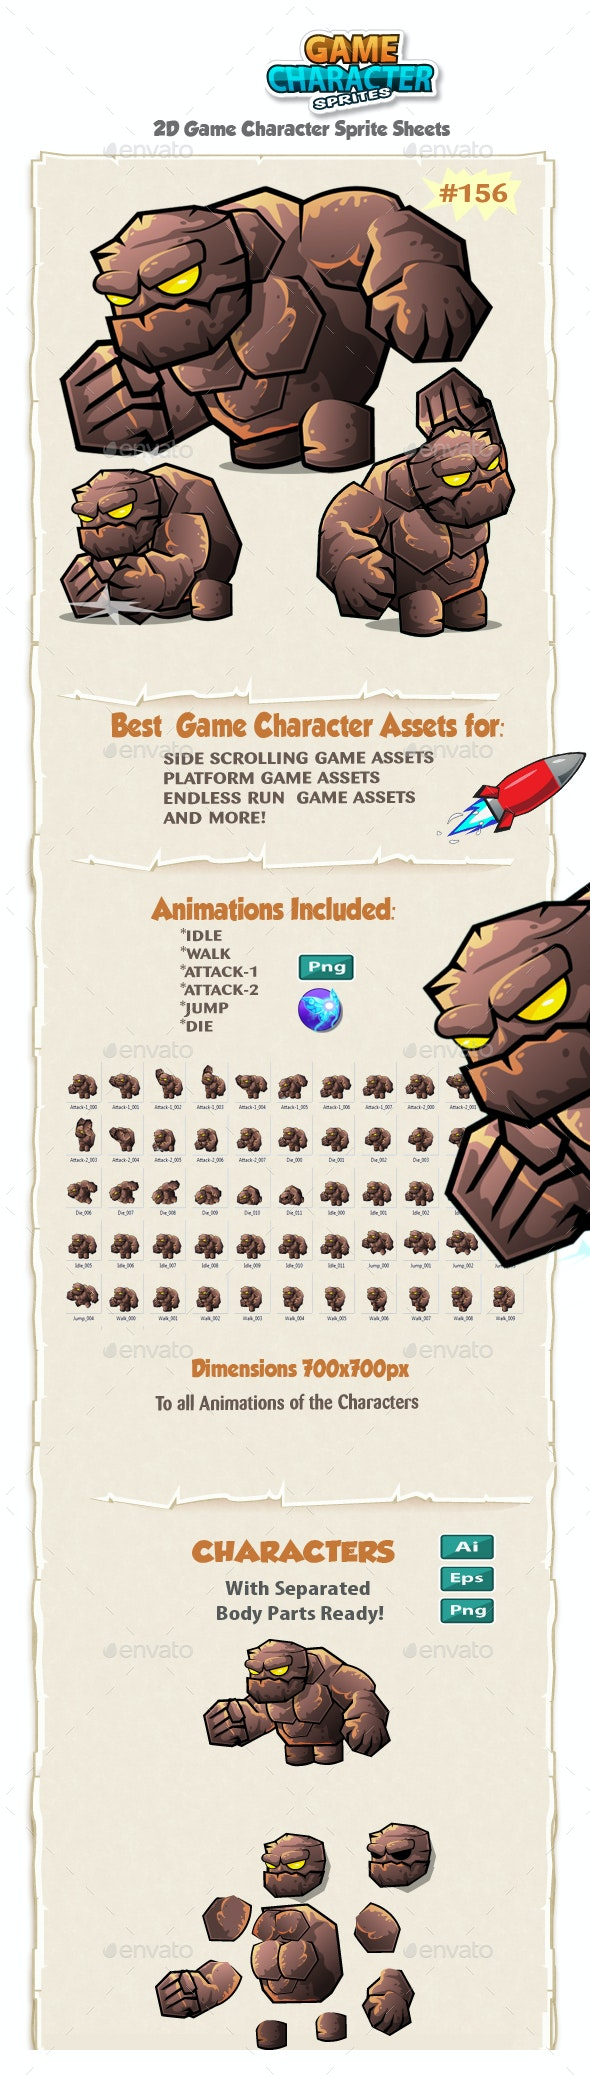 Monster Stone Giant 2D Game Character Sprites 156. - Sprites Game Assets